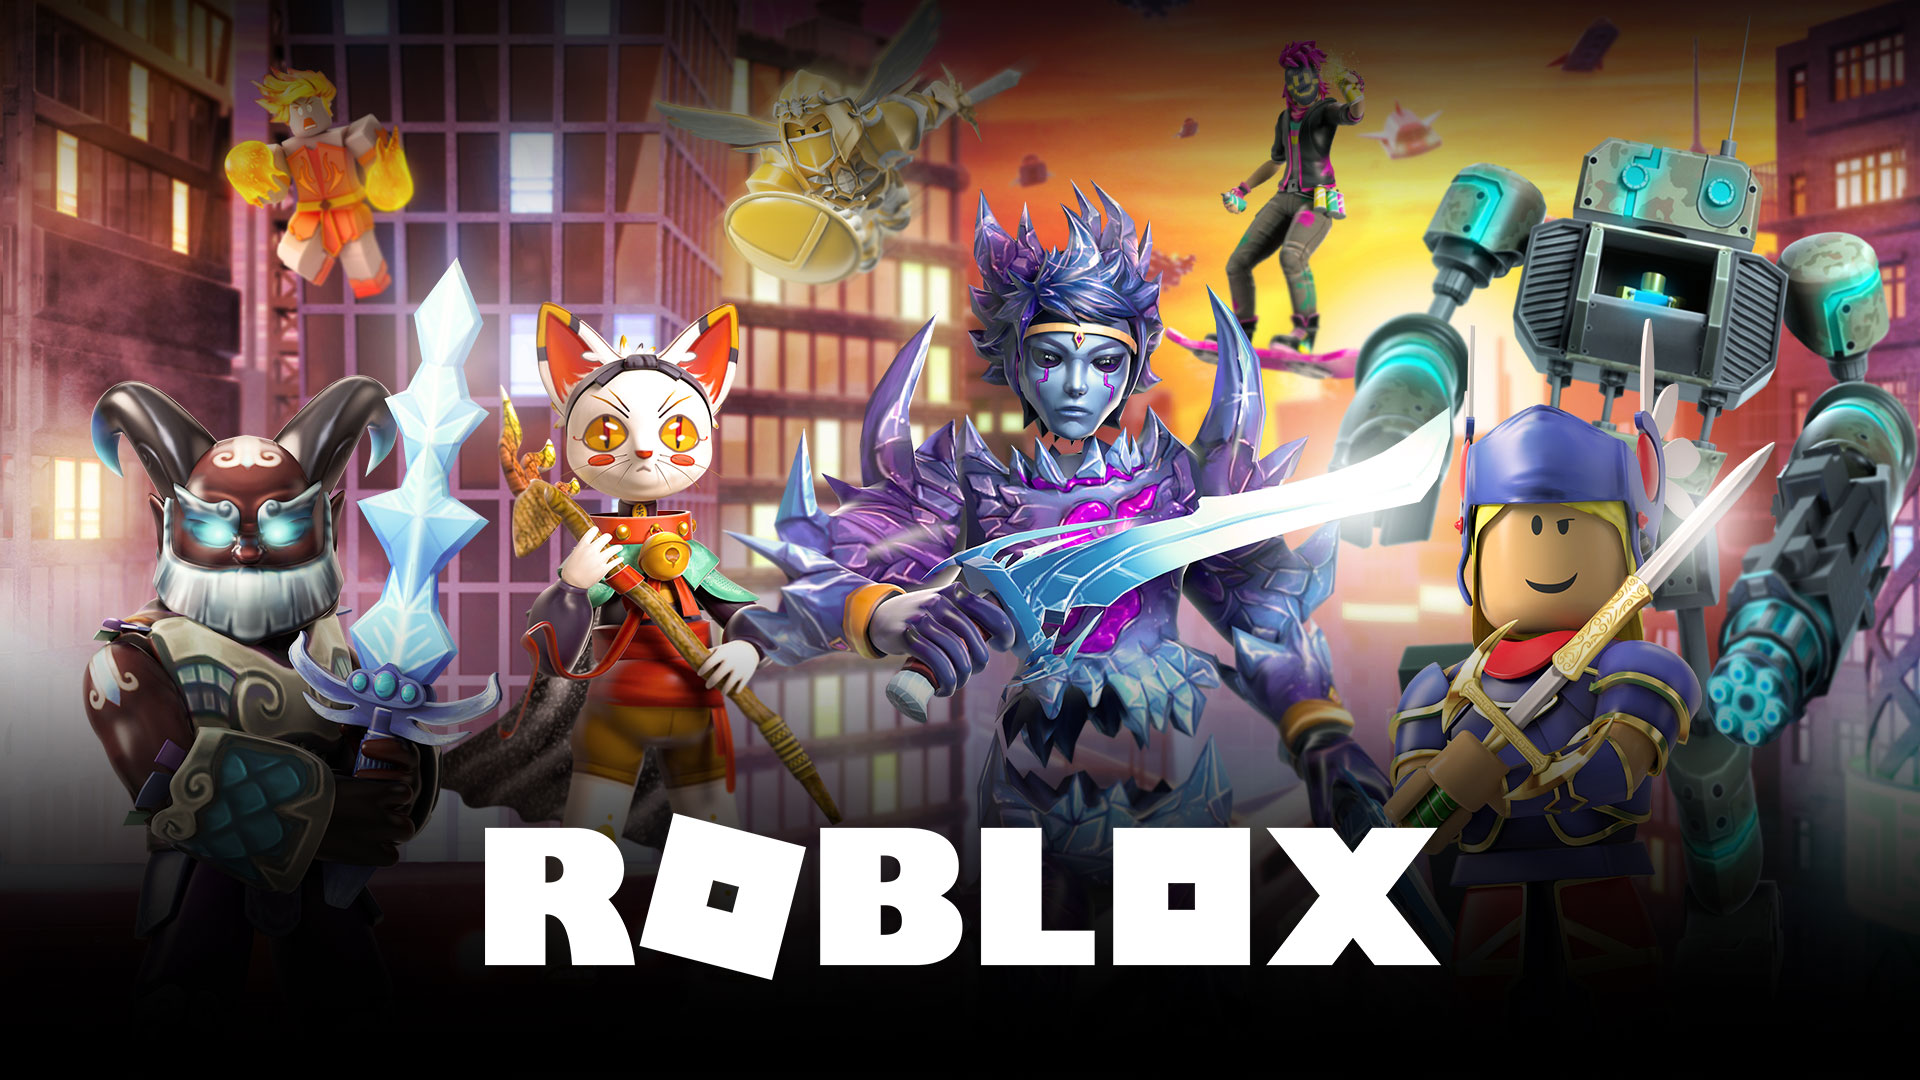 Several characters from Roblox posing